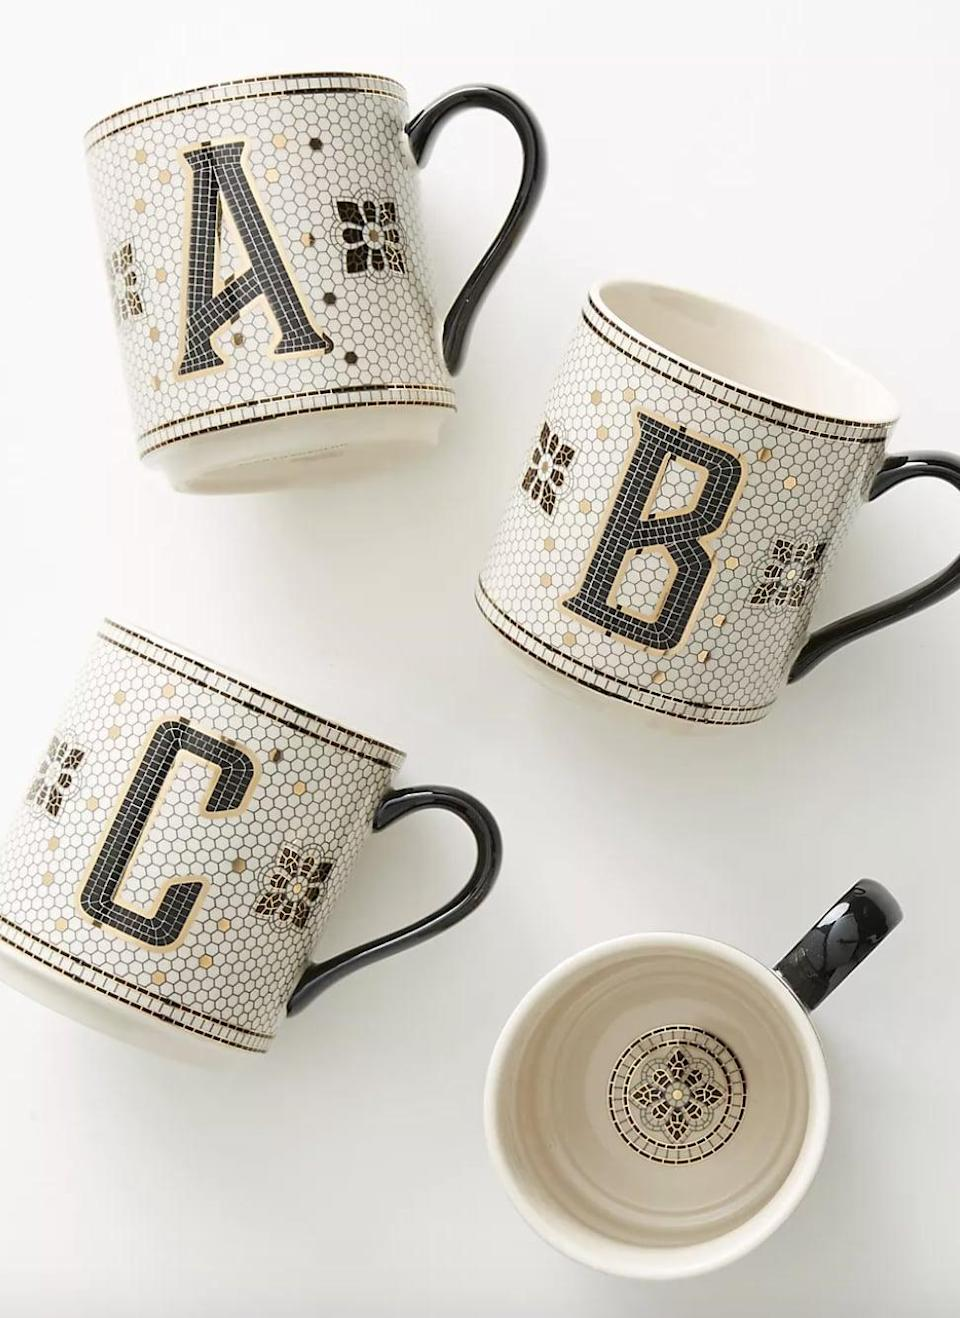 <p>They can drink her morning brew from this <span>Tiled Margot Monogram Mug </span> ($14). The personalized element will make them feel special.</p>